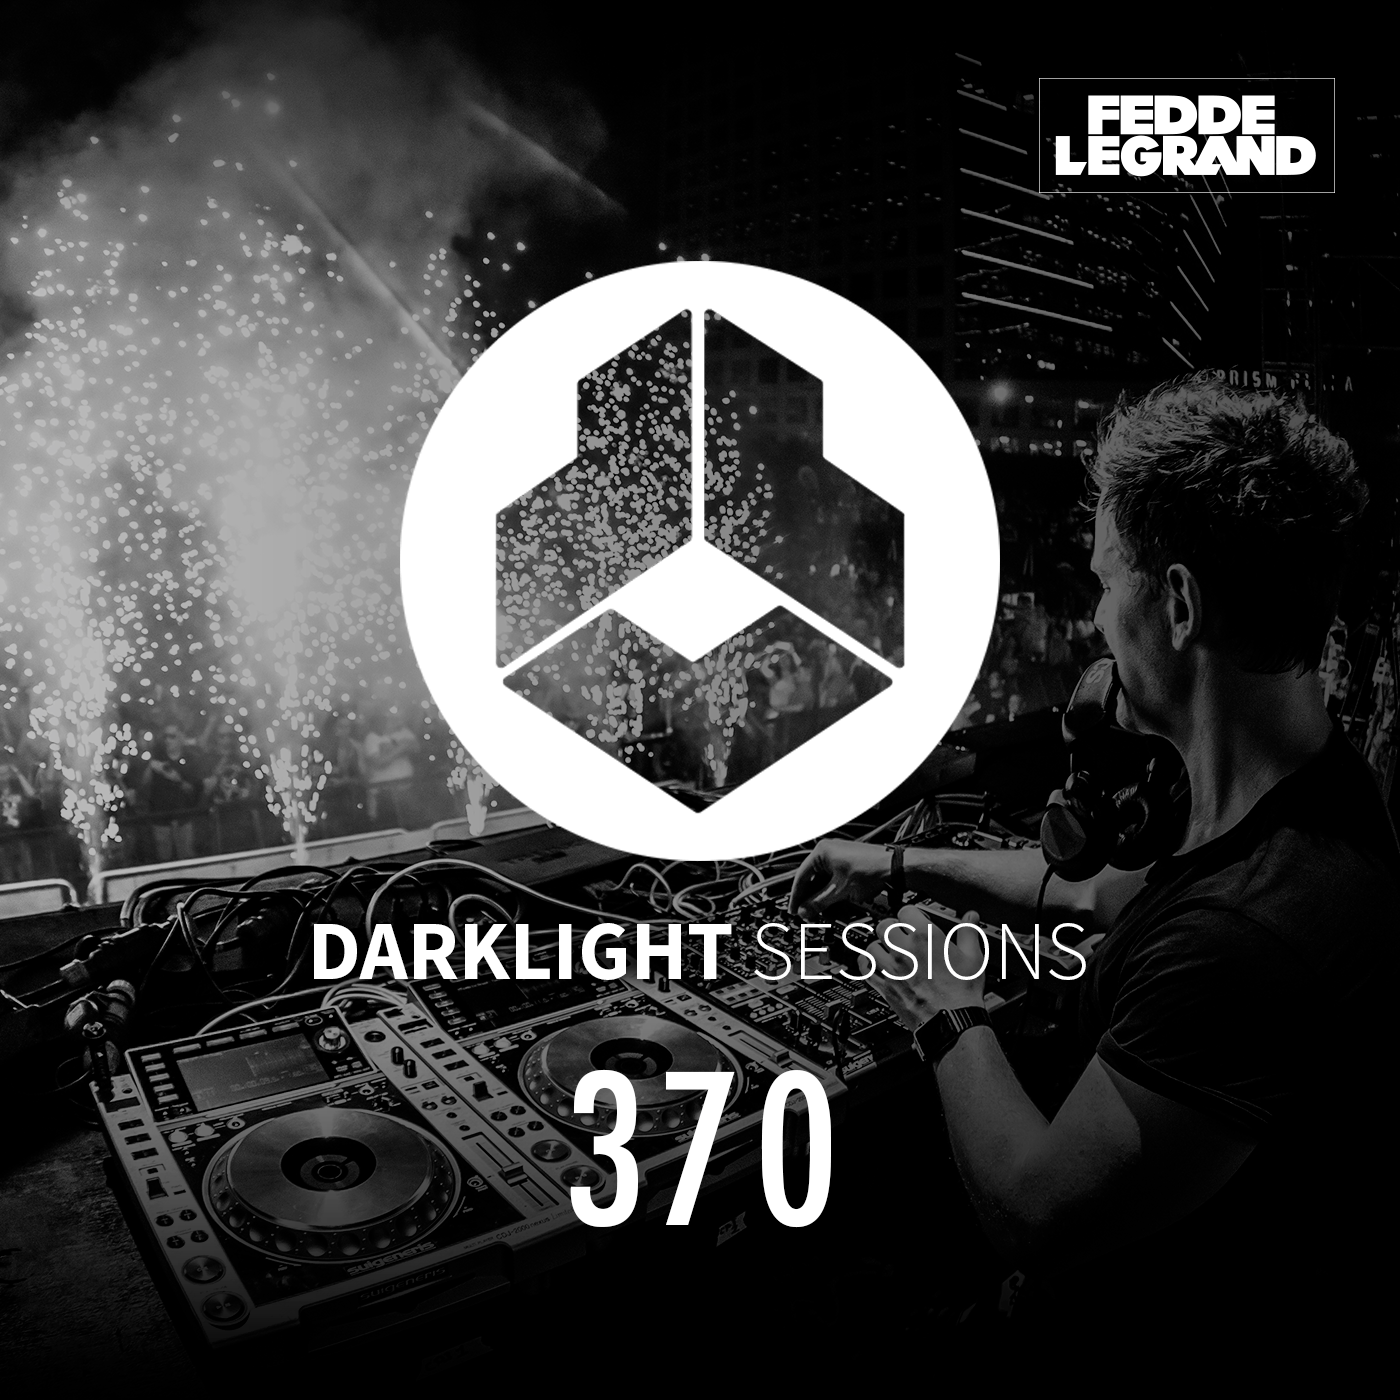 Darklight Sessions 370